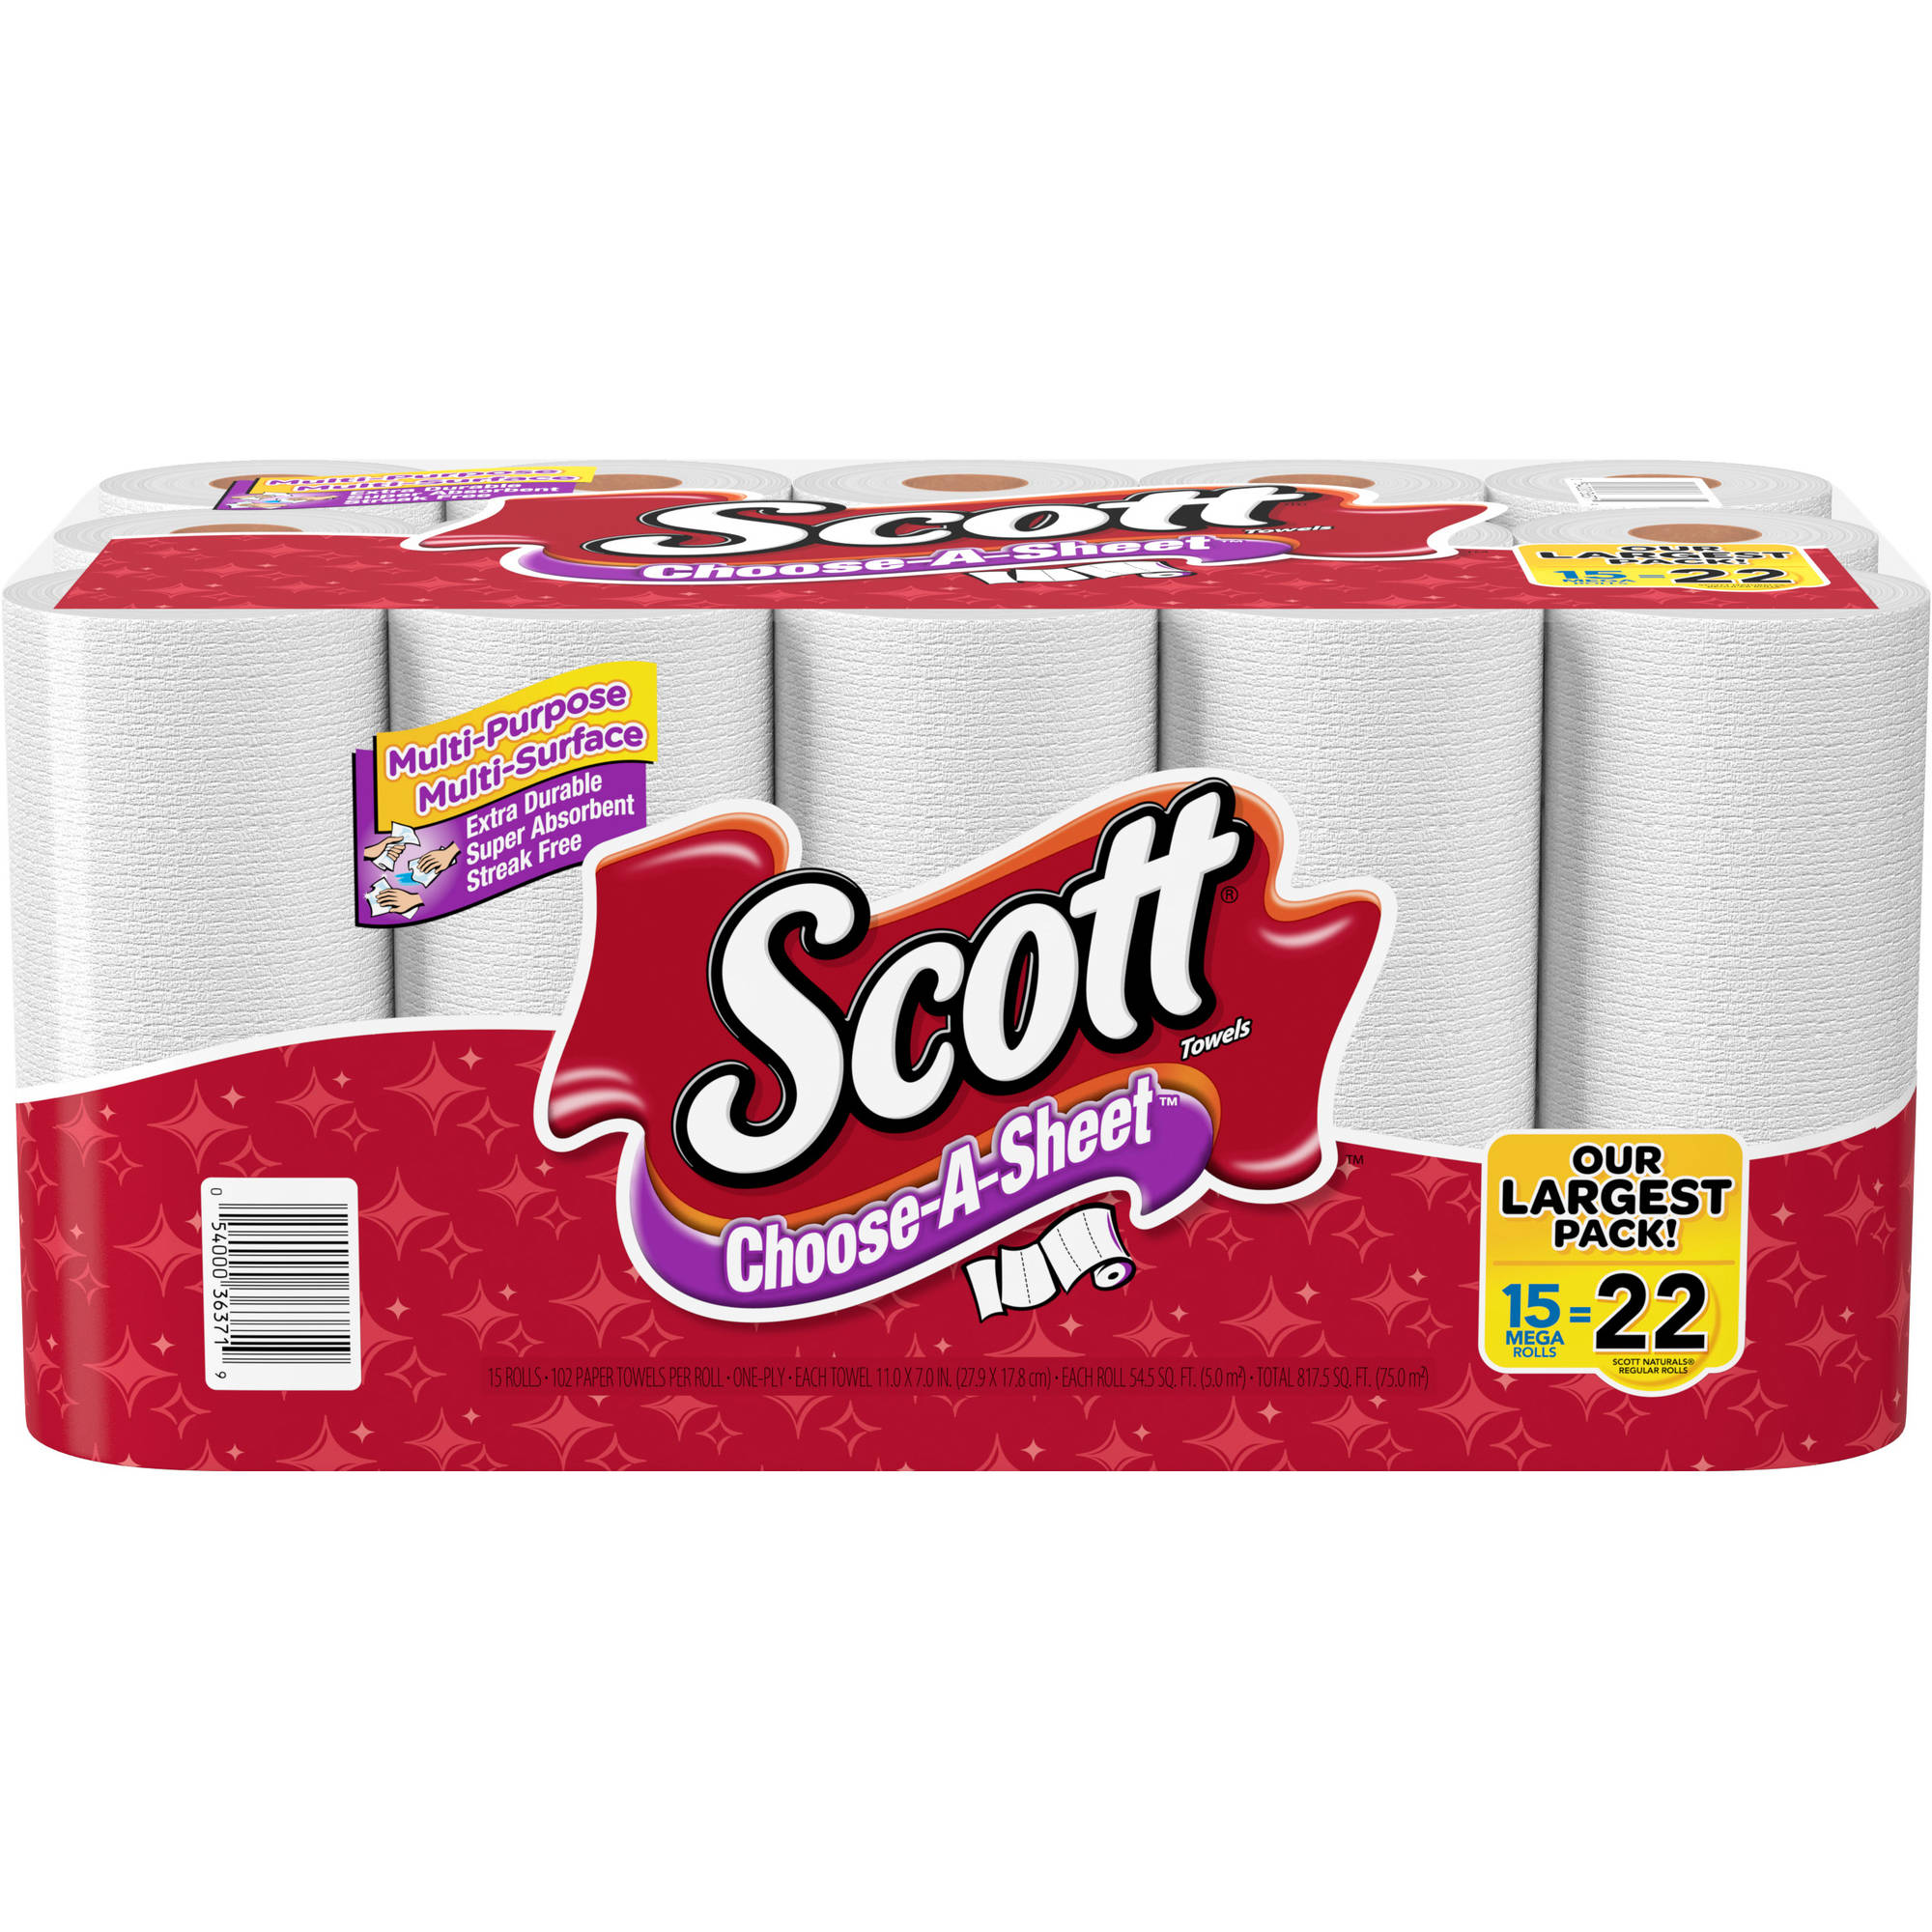 Scott Choose-a-Sheet Mega Roll Paper Towels, 15 rolls